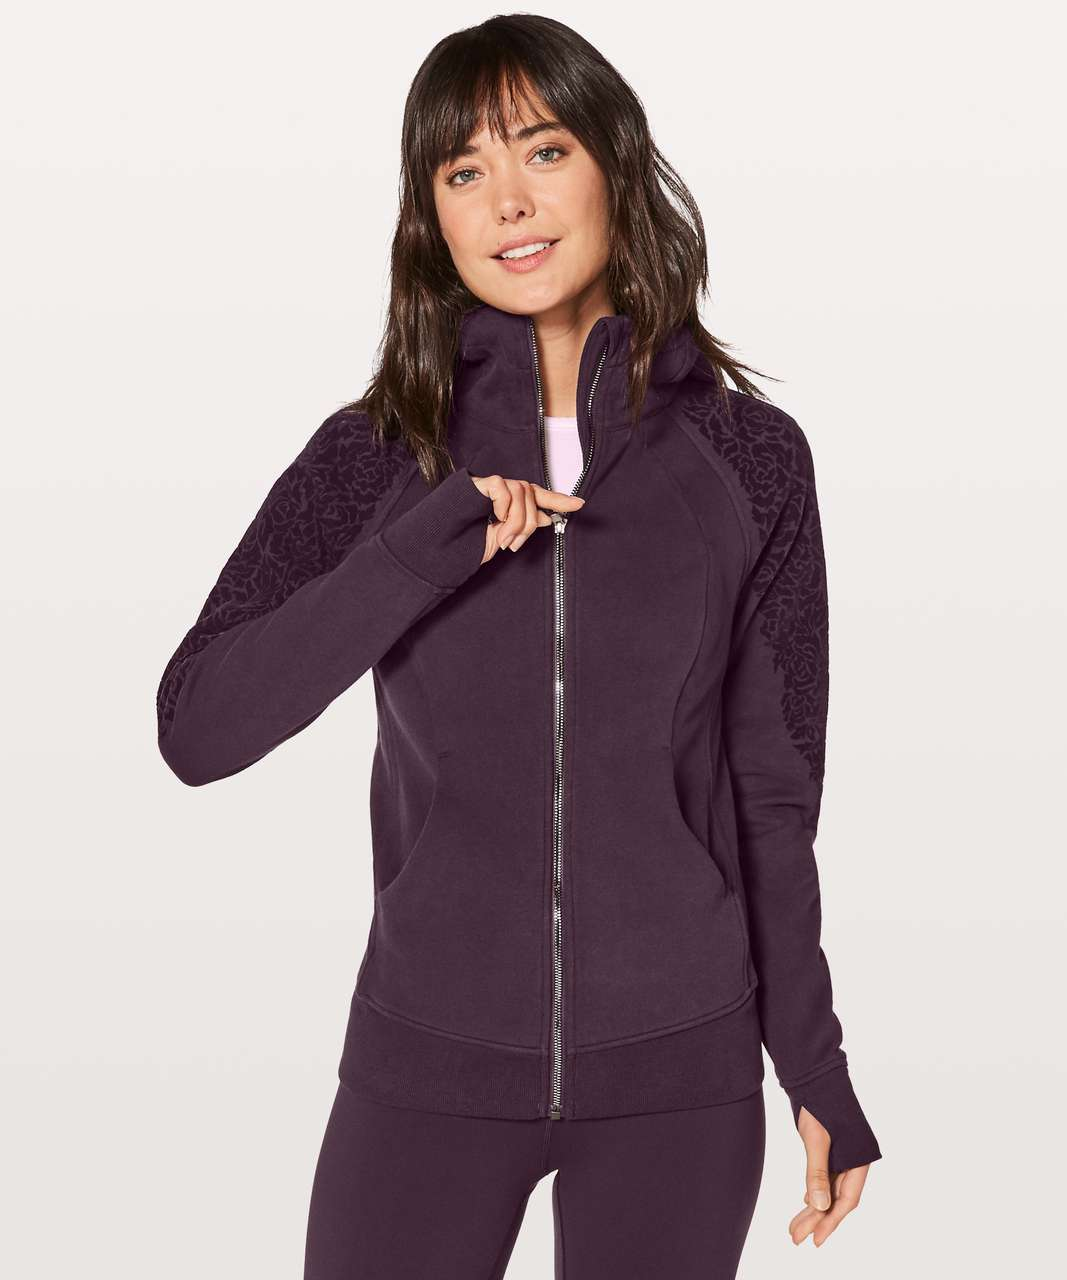 Lululemon Scuba Hoodie Light Cotton Fleece (Floral Flock) - Black Cherry